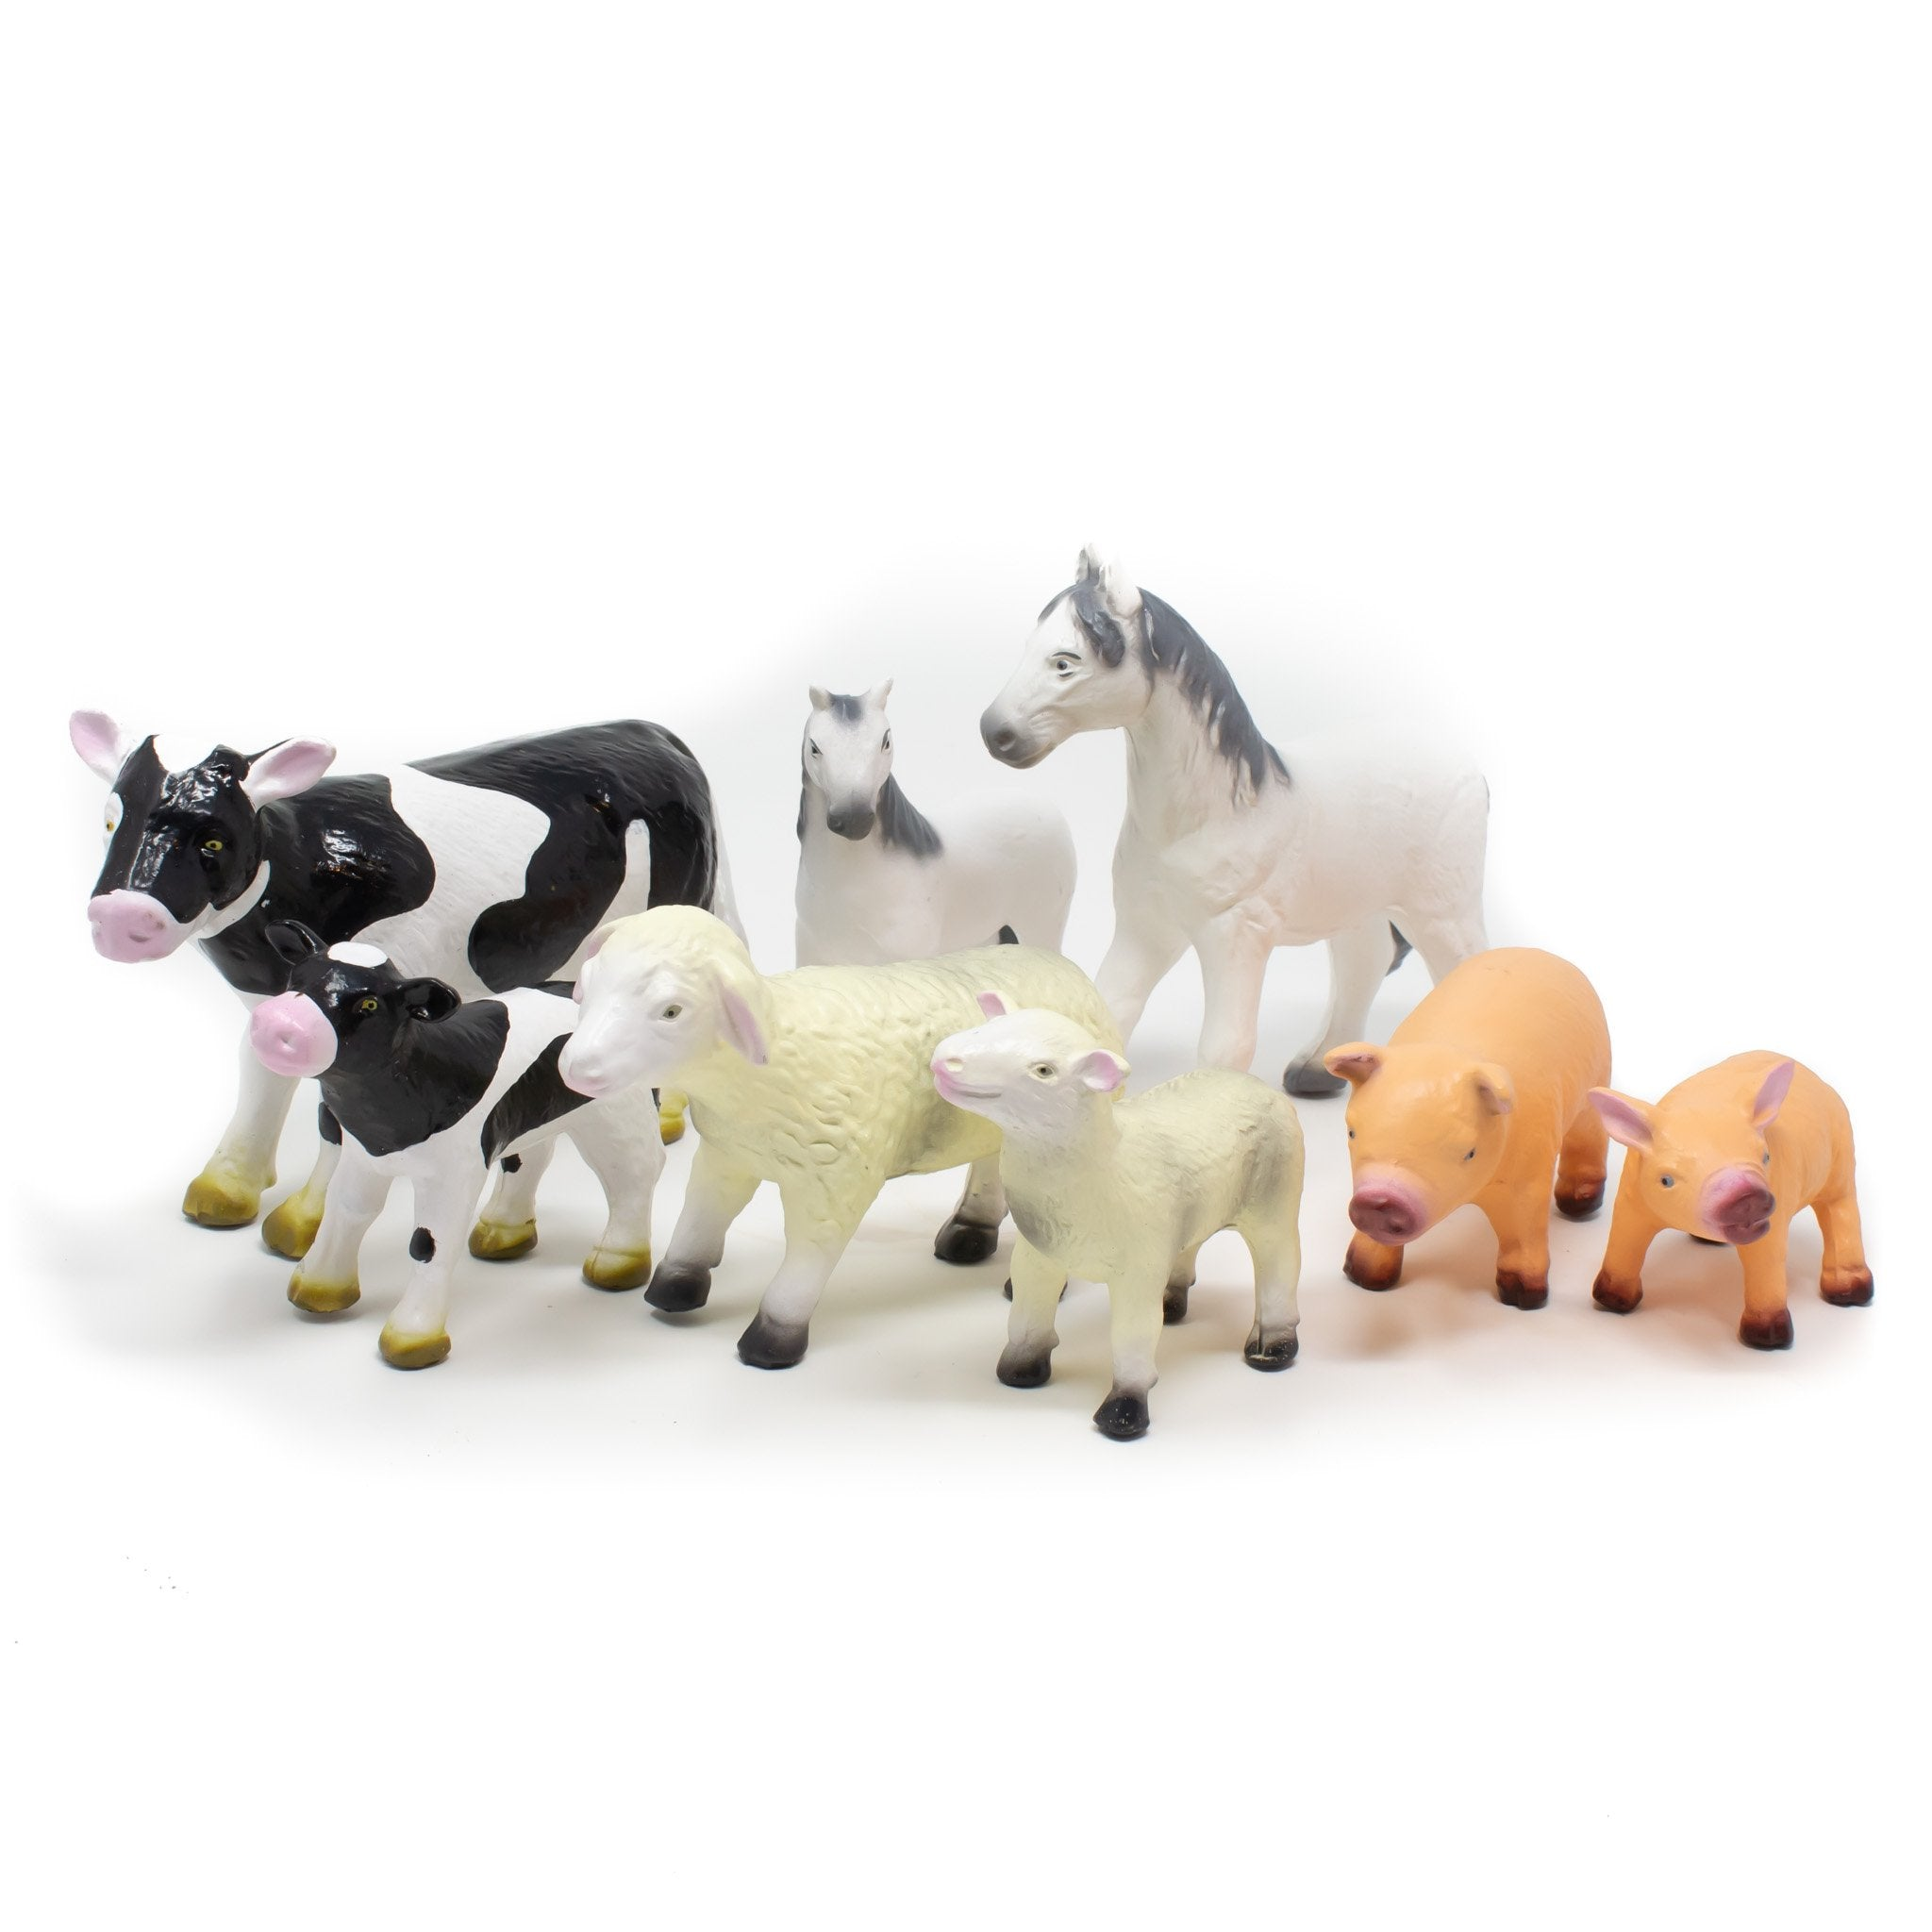 Green Rubber Toys - Farm Animals, Set of 8